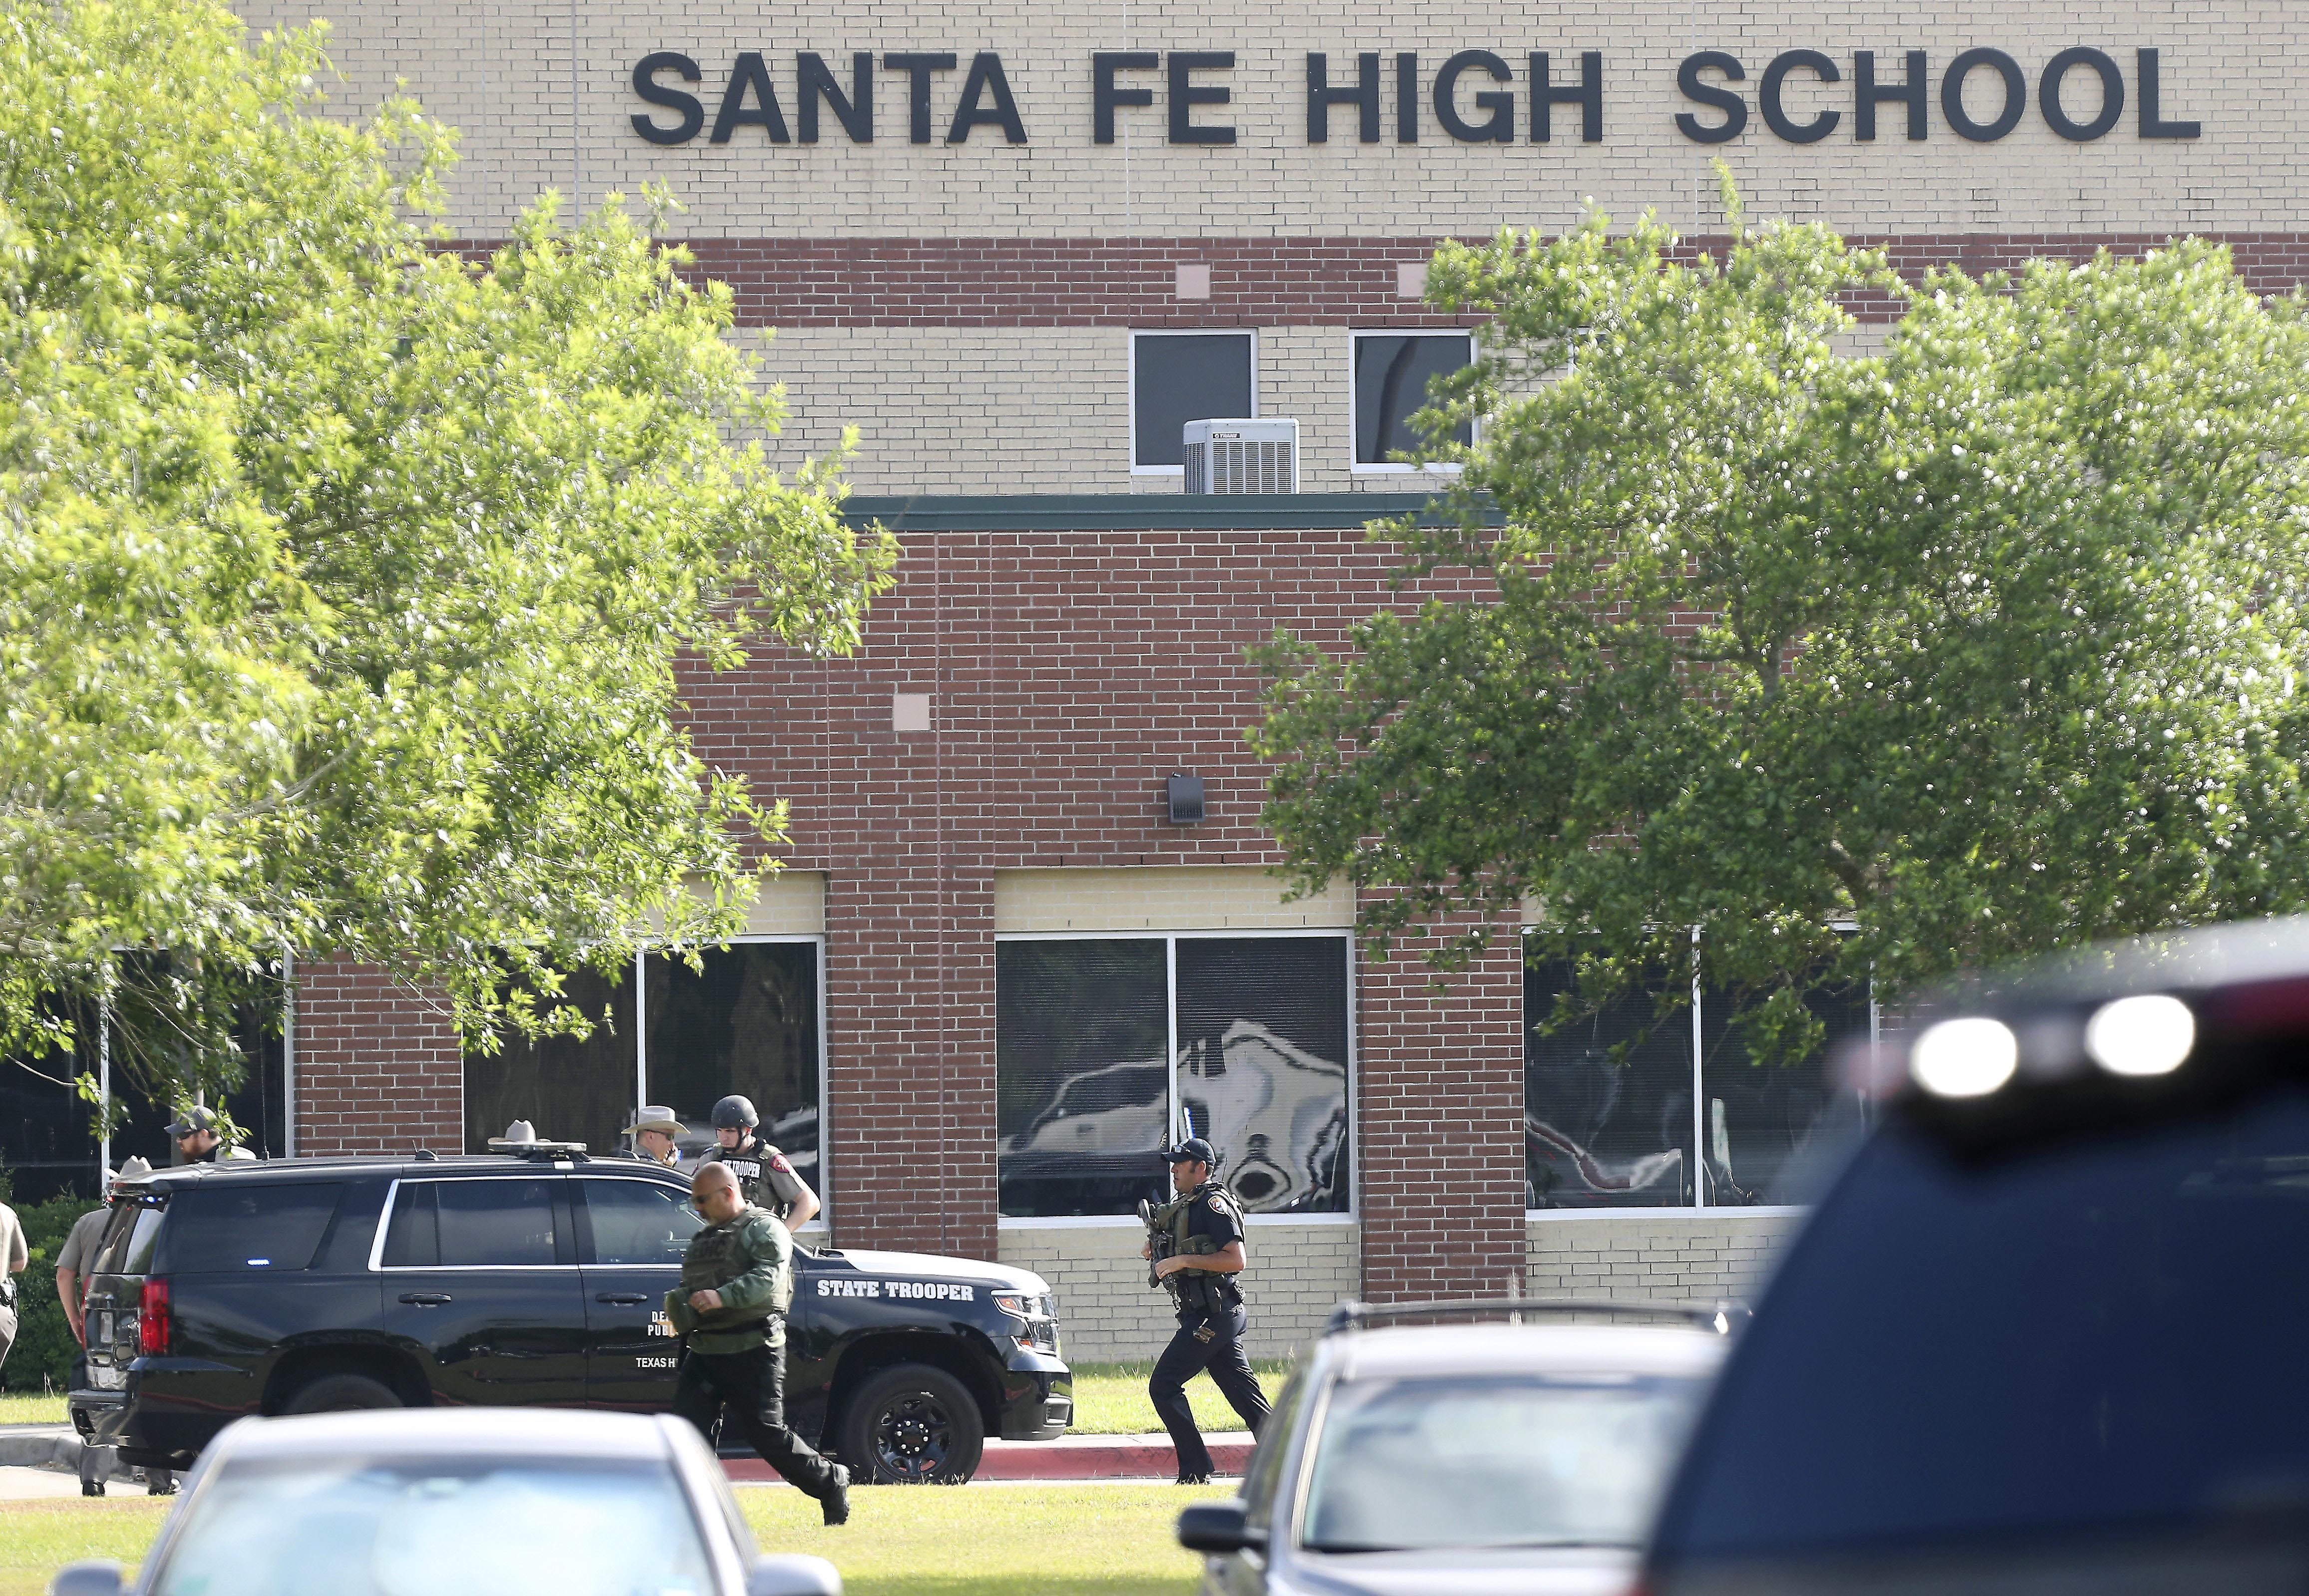 Law enforcement officers respond to Santa Fe High School after an active shooter was reported on campus, in Santa Fe, Texas, on Friday, May 18, 2018. Photo: Steve Gonzales/Houston Chronicle via AP